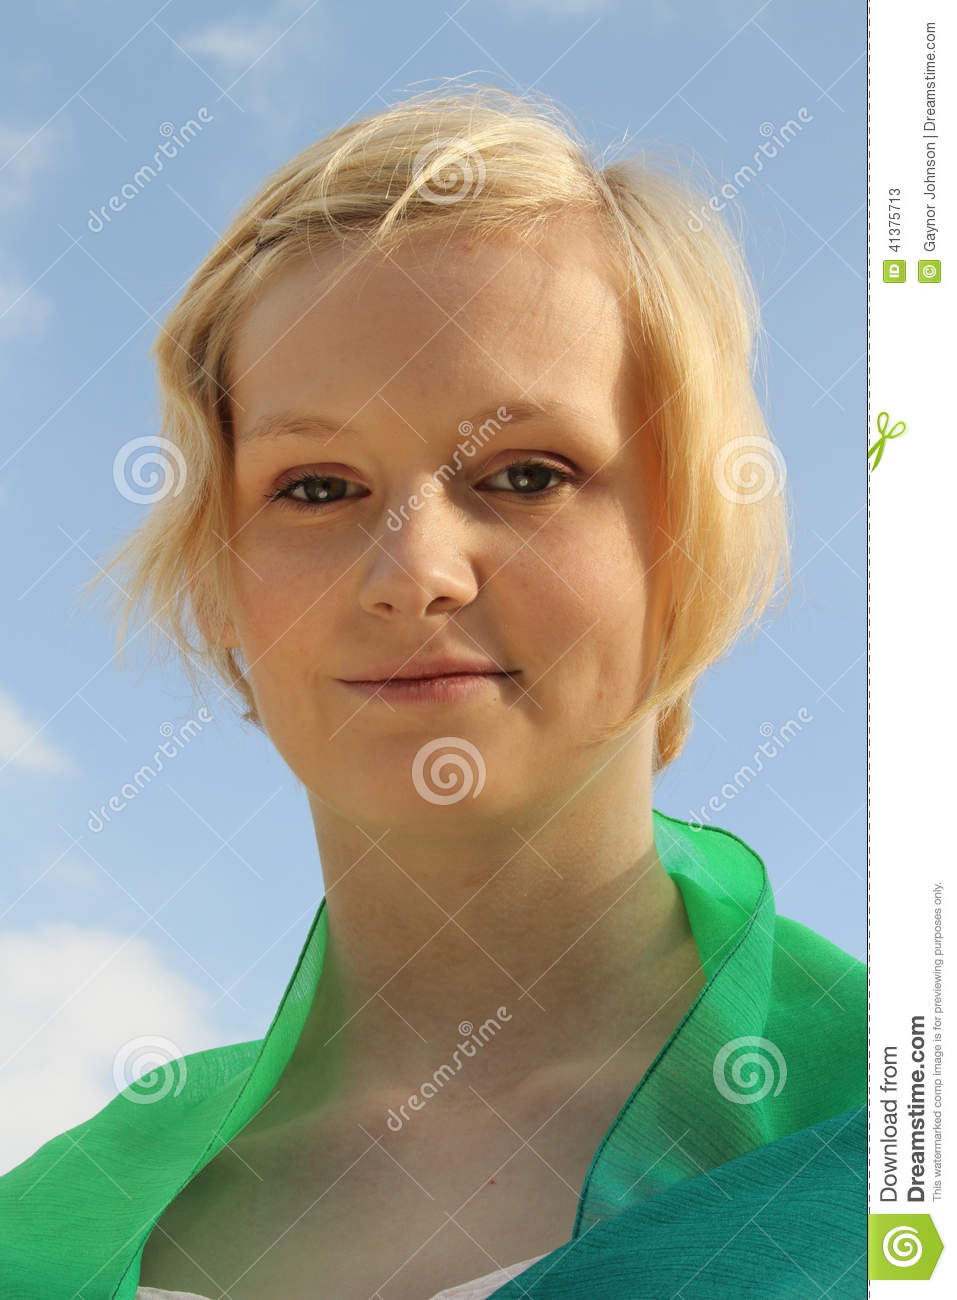 Young caucasian woman against bright blue sky